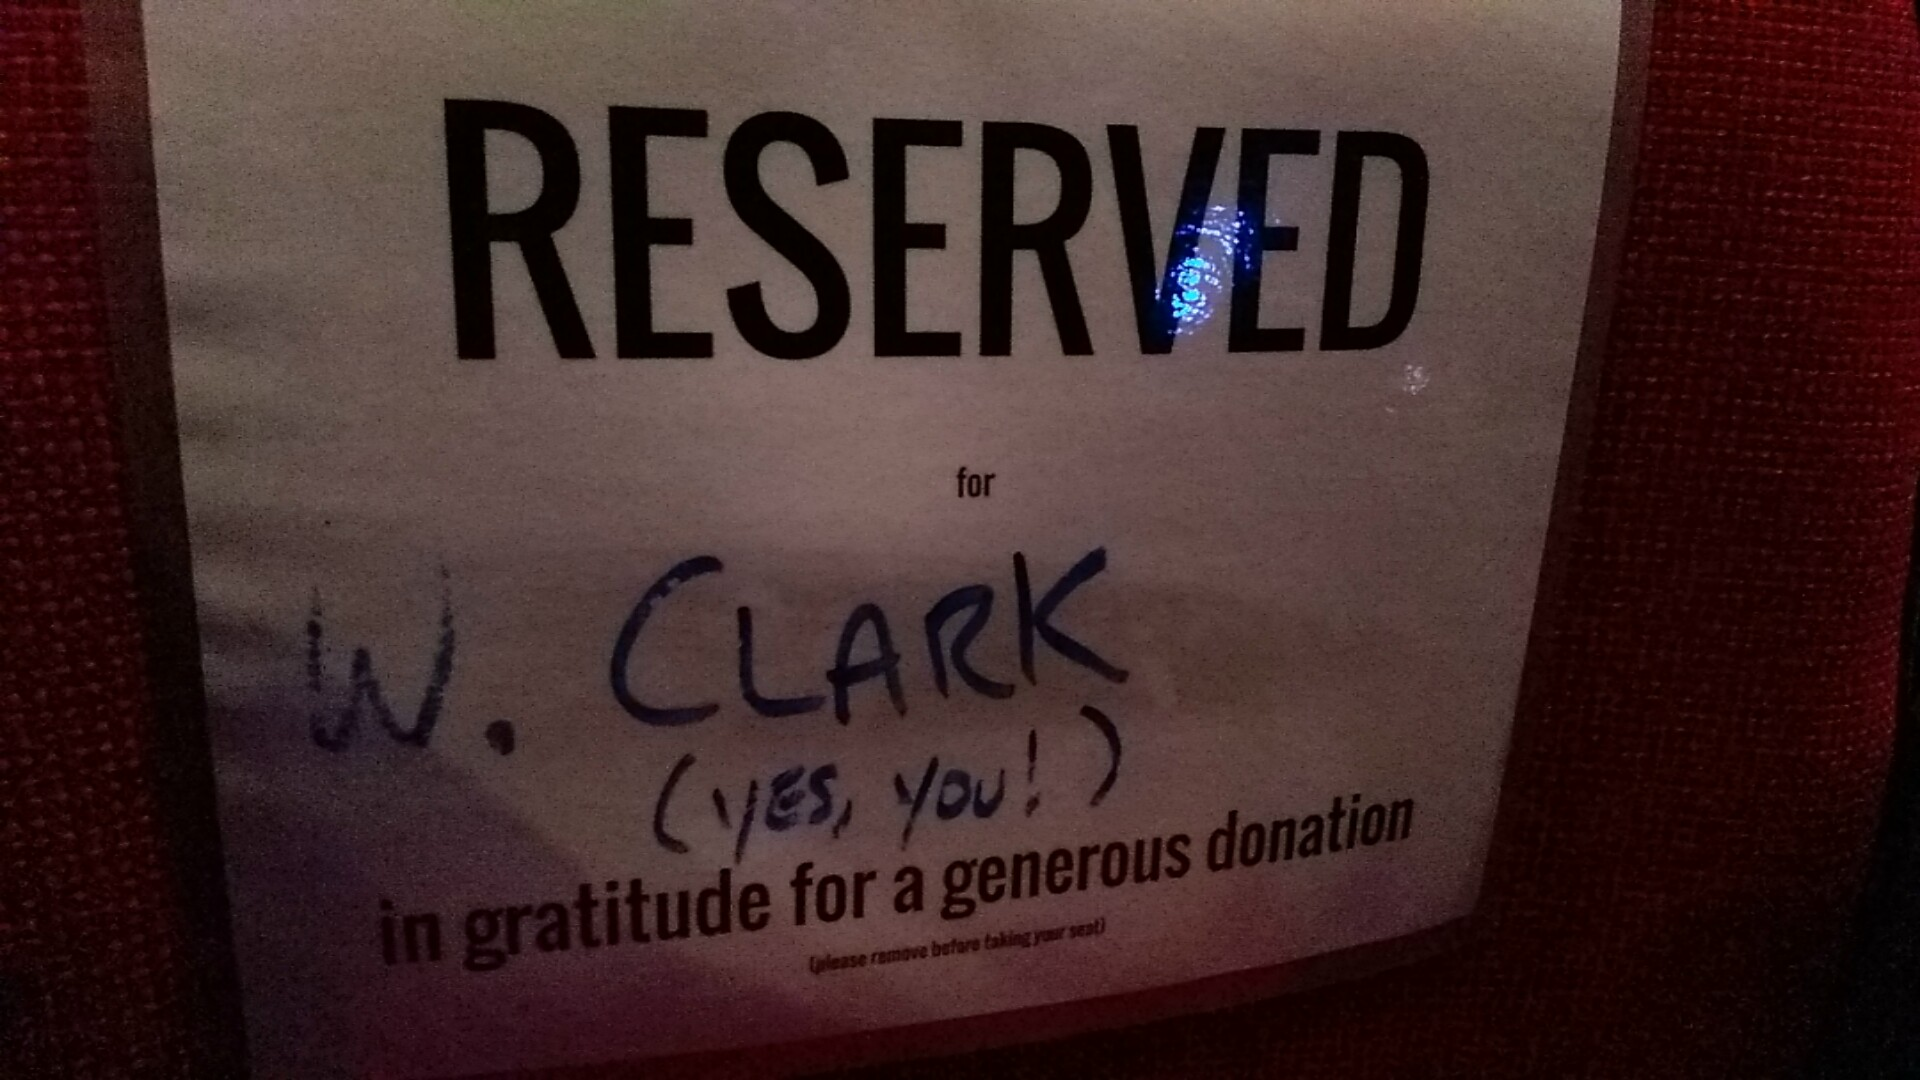 Reserved seats at the theatre